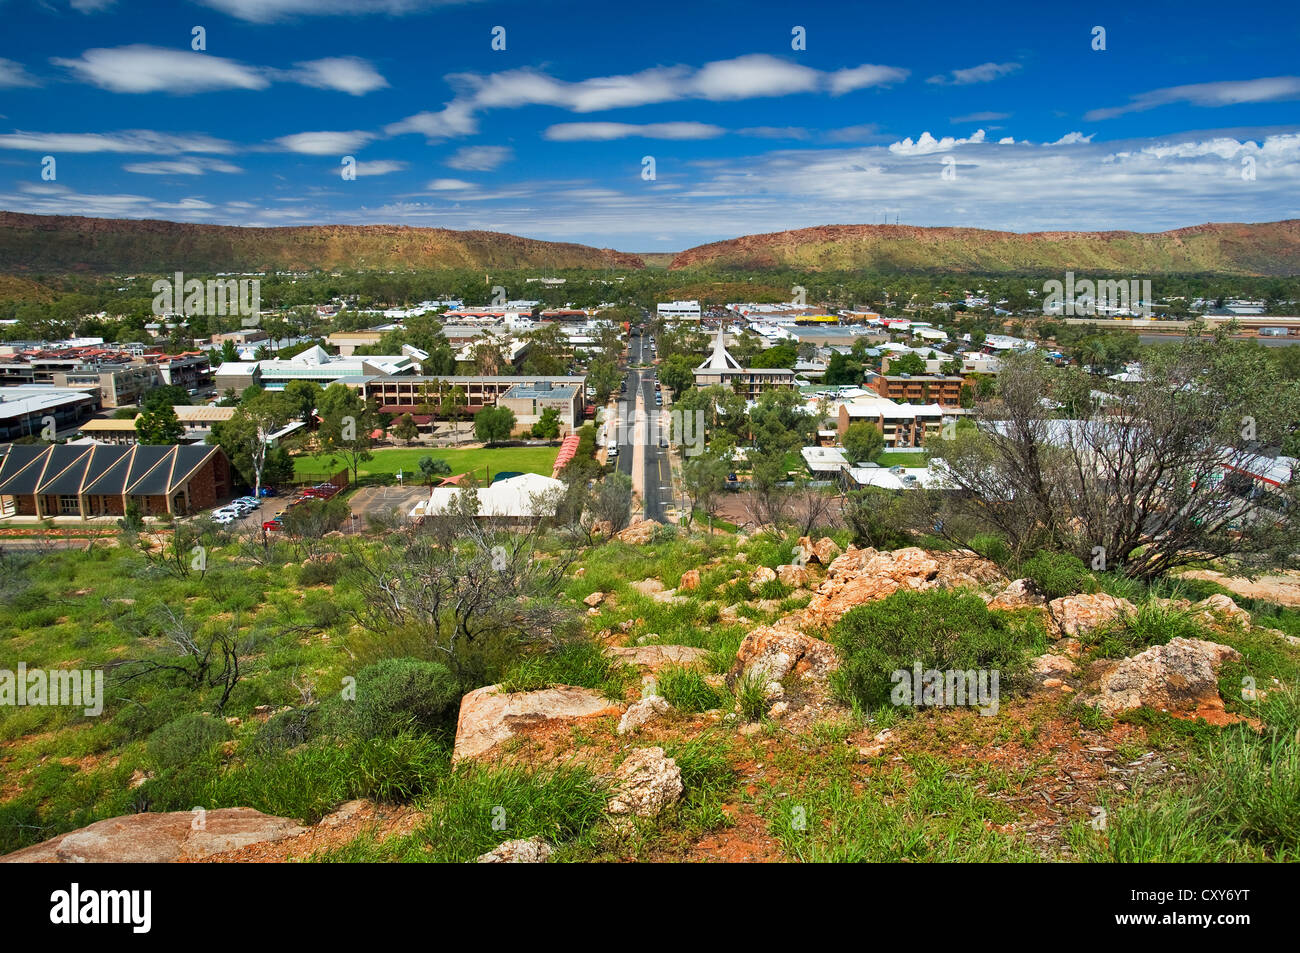 View of Alice Springs from ANZAC Hill. - Stock Image